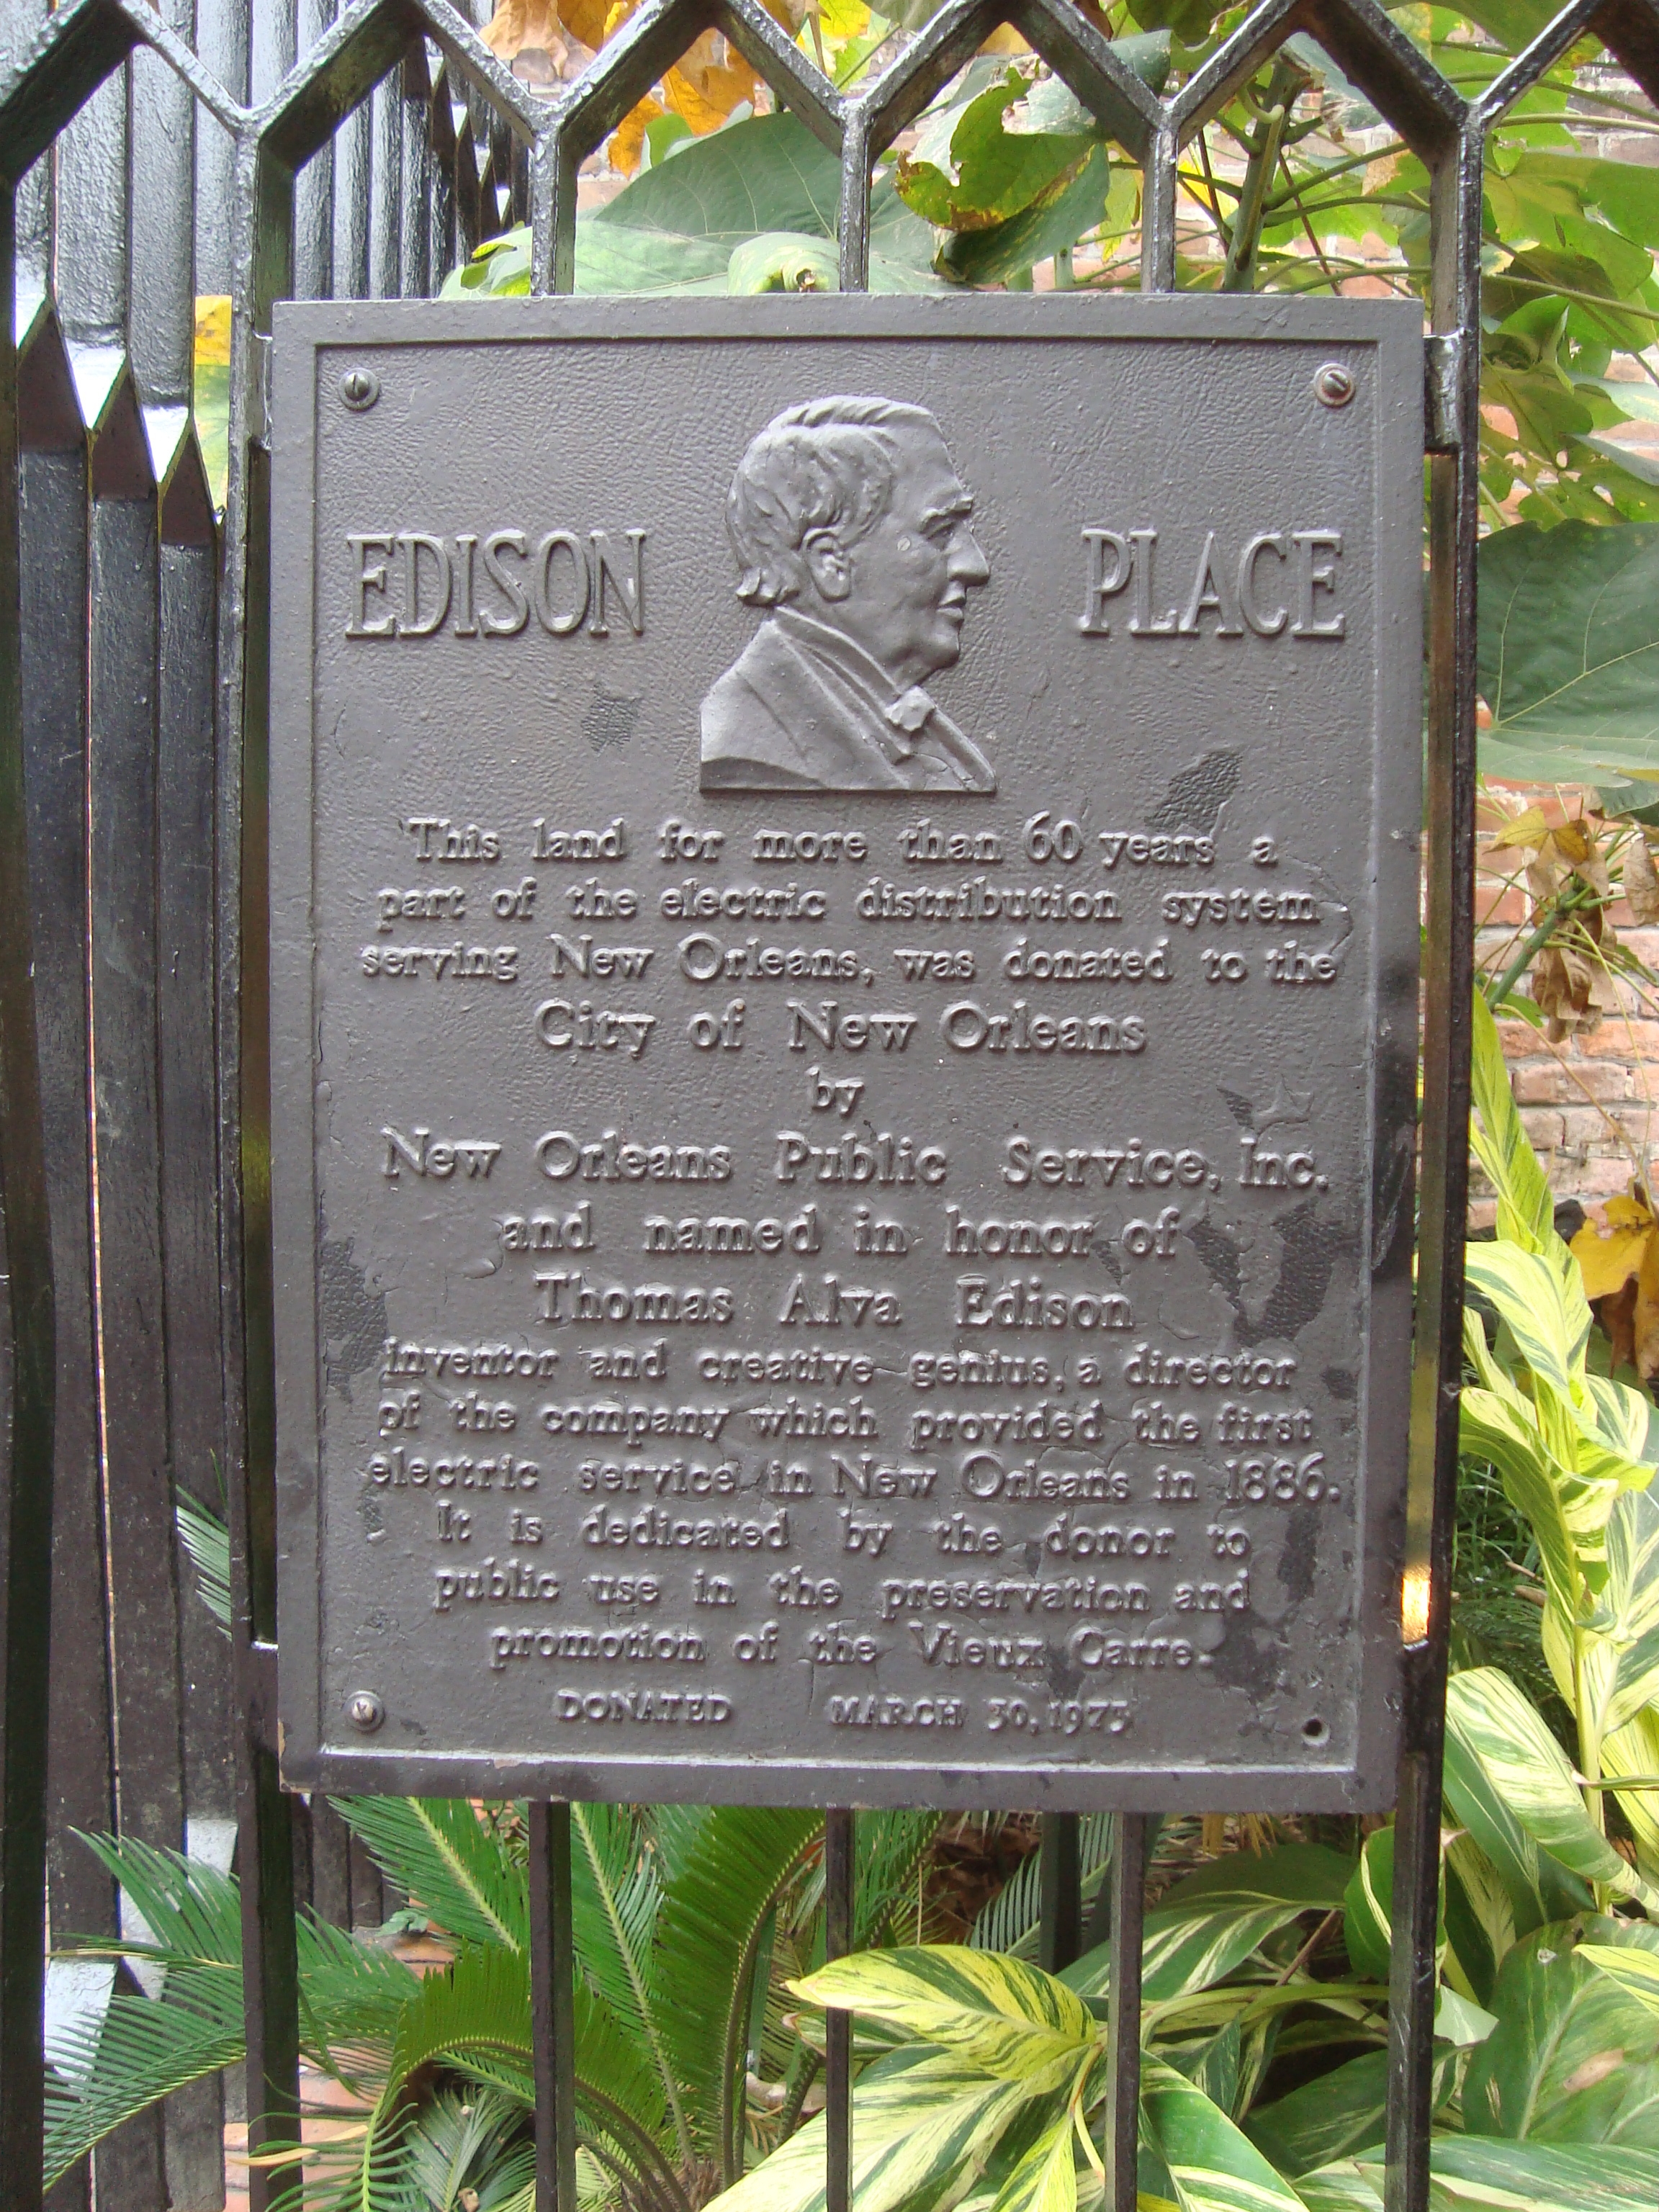 The Edison Place marker